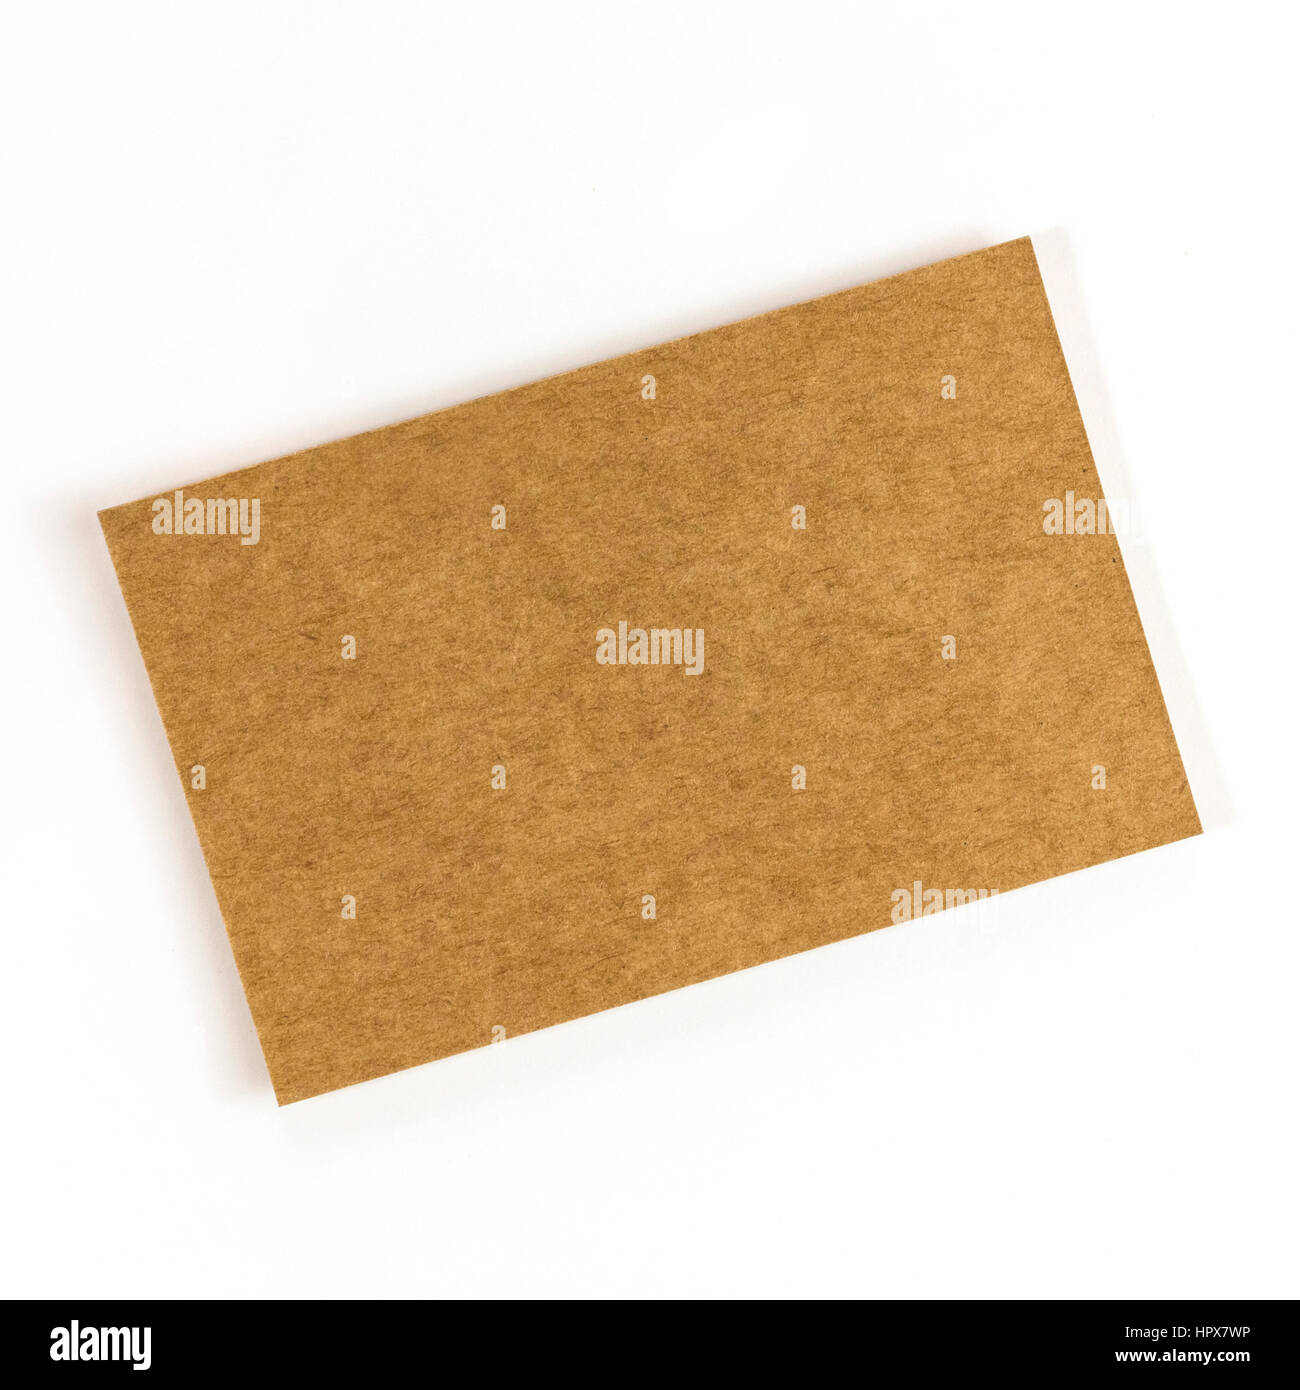 A photo of a kraft paper business card on a white background a a photo of a kraft paper business card on a white background a mockup or a minimalist banner with copy space colourmoves